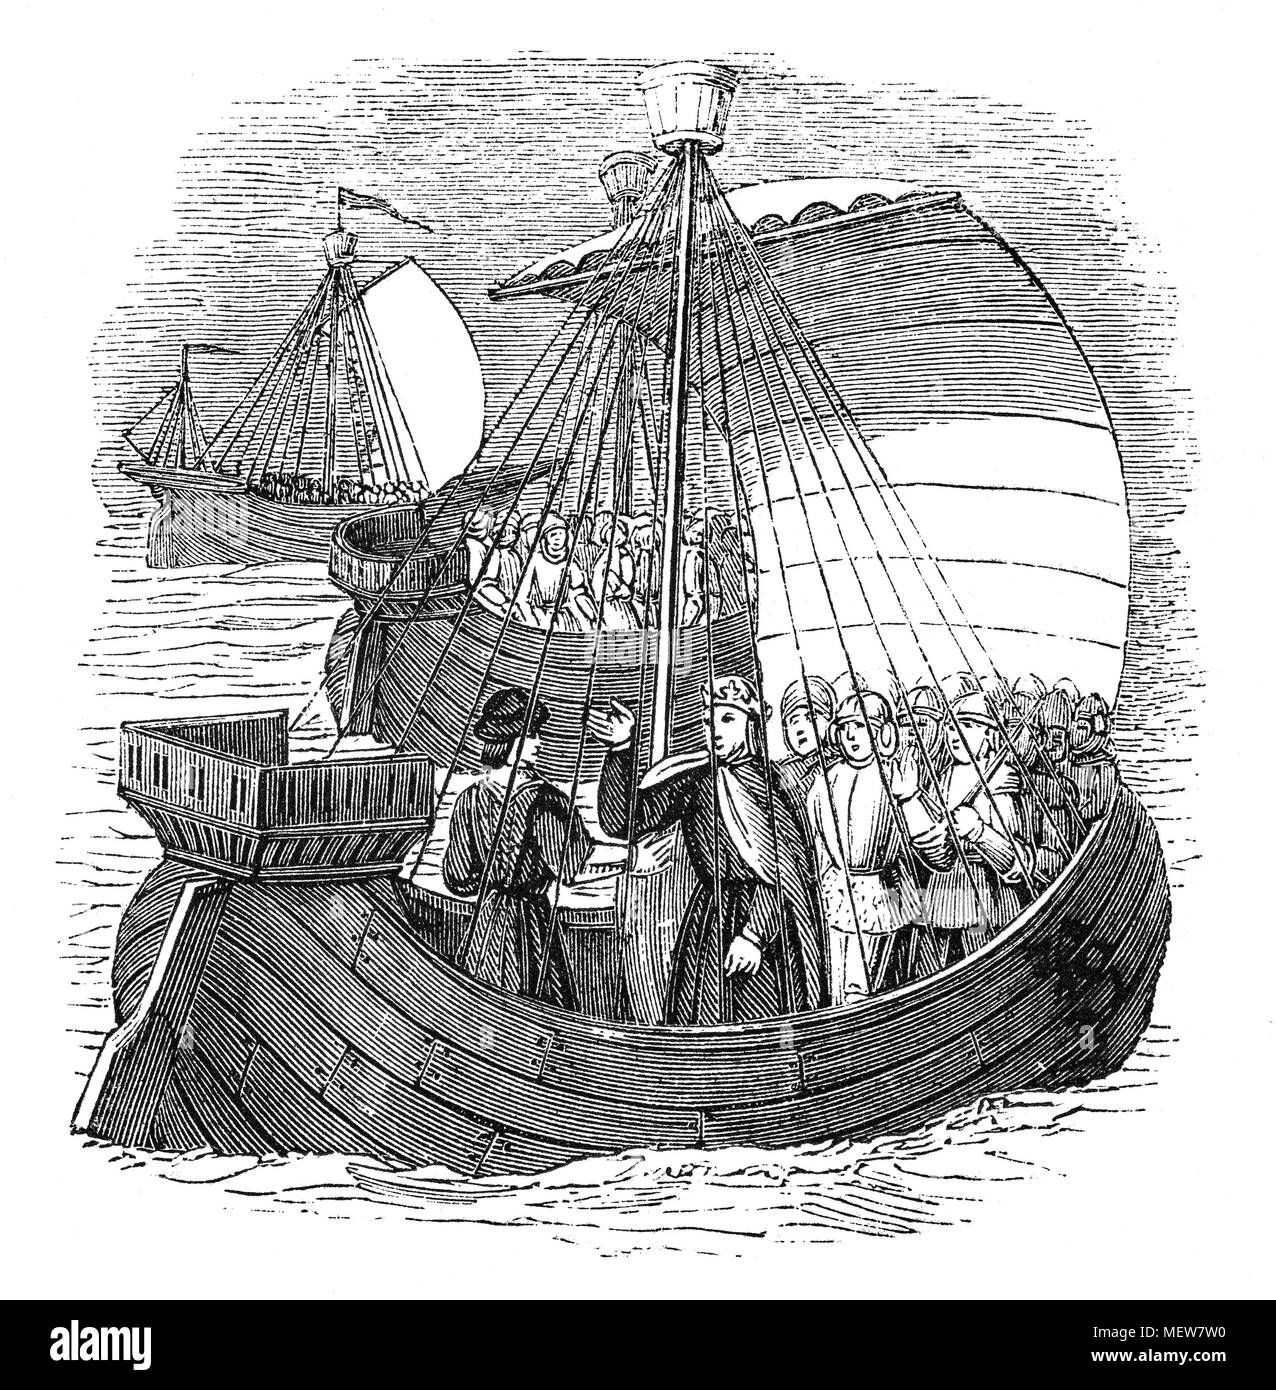 15th Century Medieval English ships of warwere powered by sail or oar, or both. Frequent communications withEurope meant exposure to a variety of improvements. Ships in the north were influenced by Viking vessels, while those in the south by classical or Roman vessels. However, there was technological change as traditional construction methods were changed from clinker to carvel construction, which would dominate the building of large ships. The period would also see a shift from the steering oar or side rudder to the stern rudder and the development from single to multi-masted ships. - Stock Image